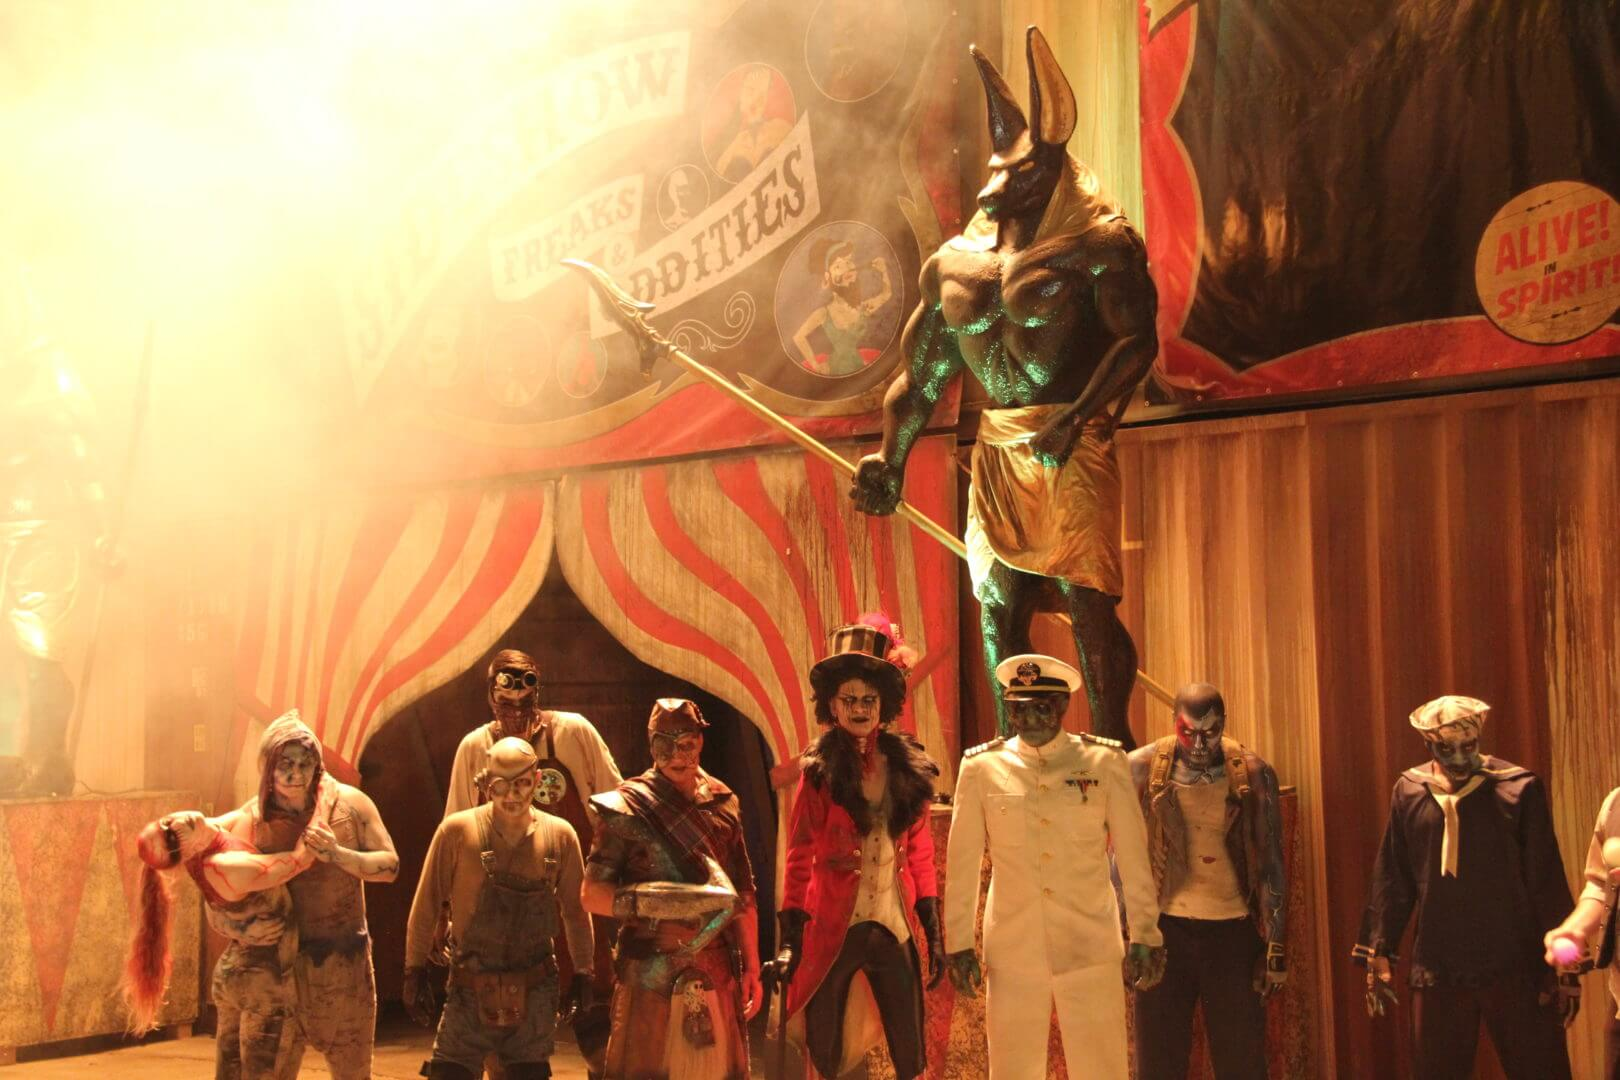 Sinister Circus haunted summer costume ball to take place on the ...